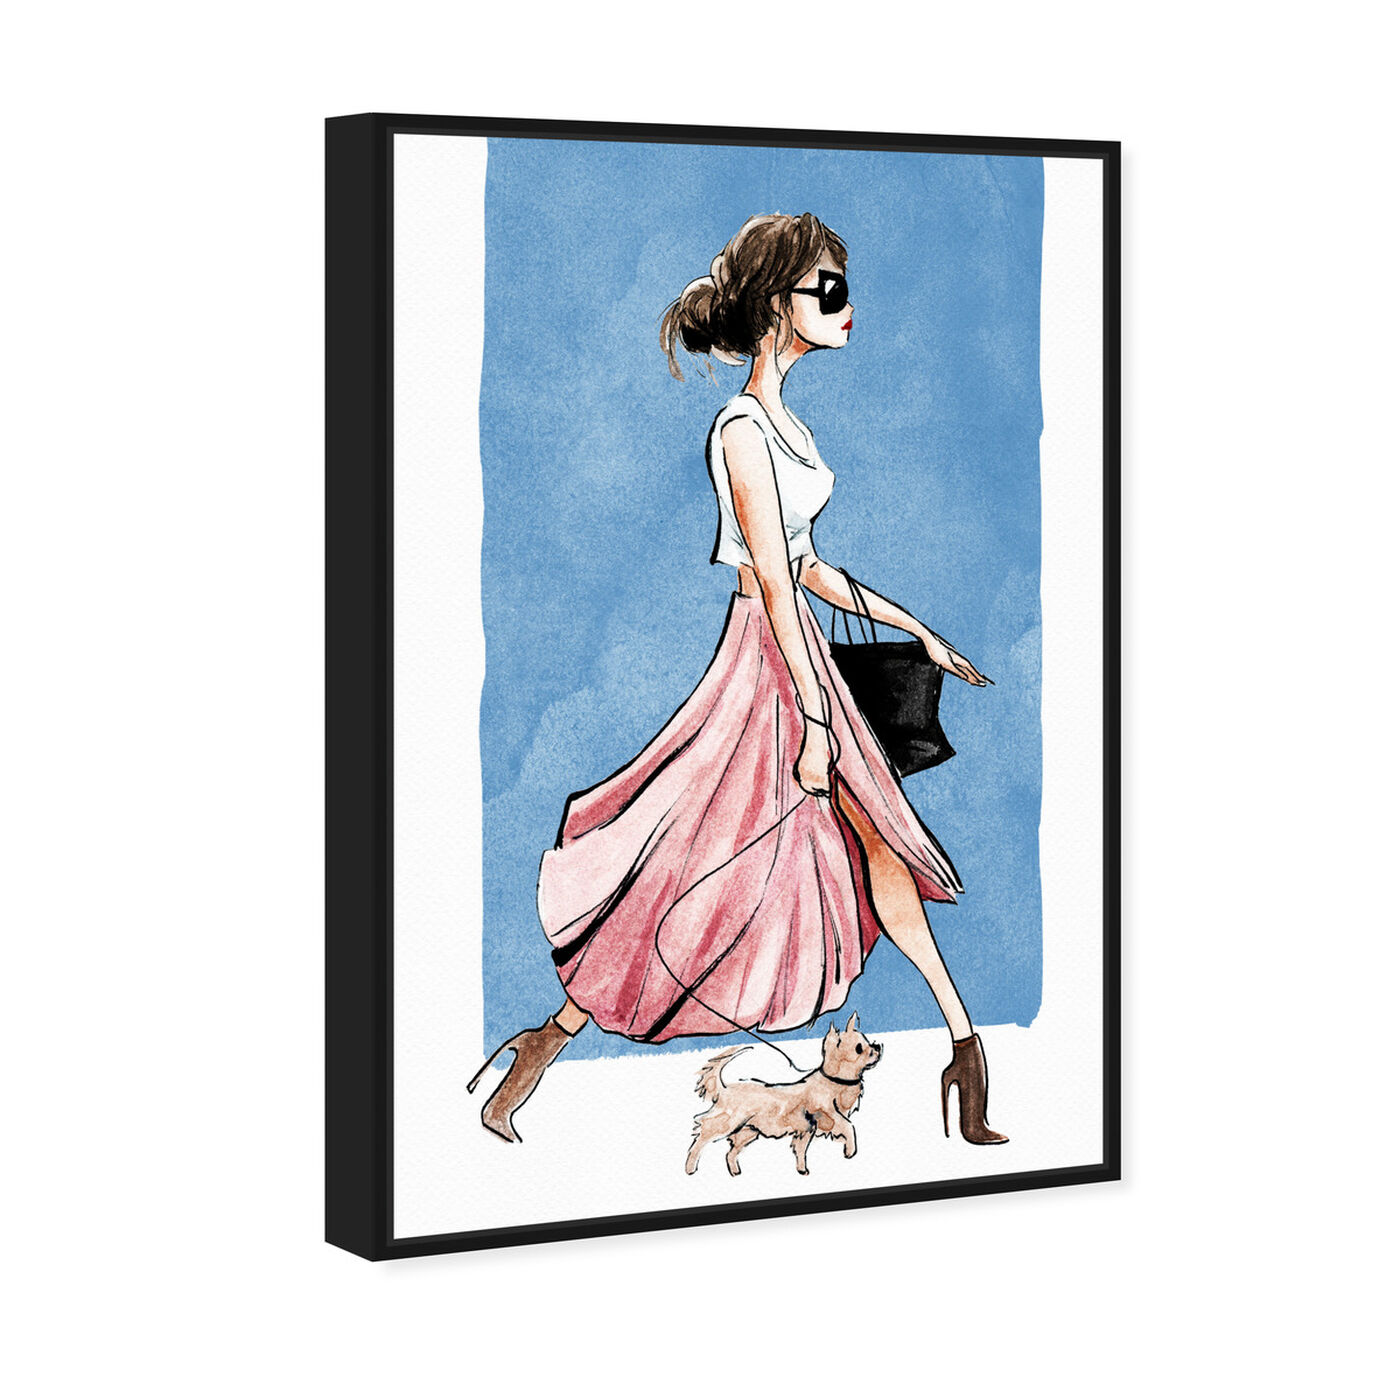 Angled view of Dog Walk Couture featuring fashion and glam and outfits art.